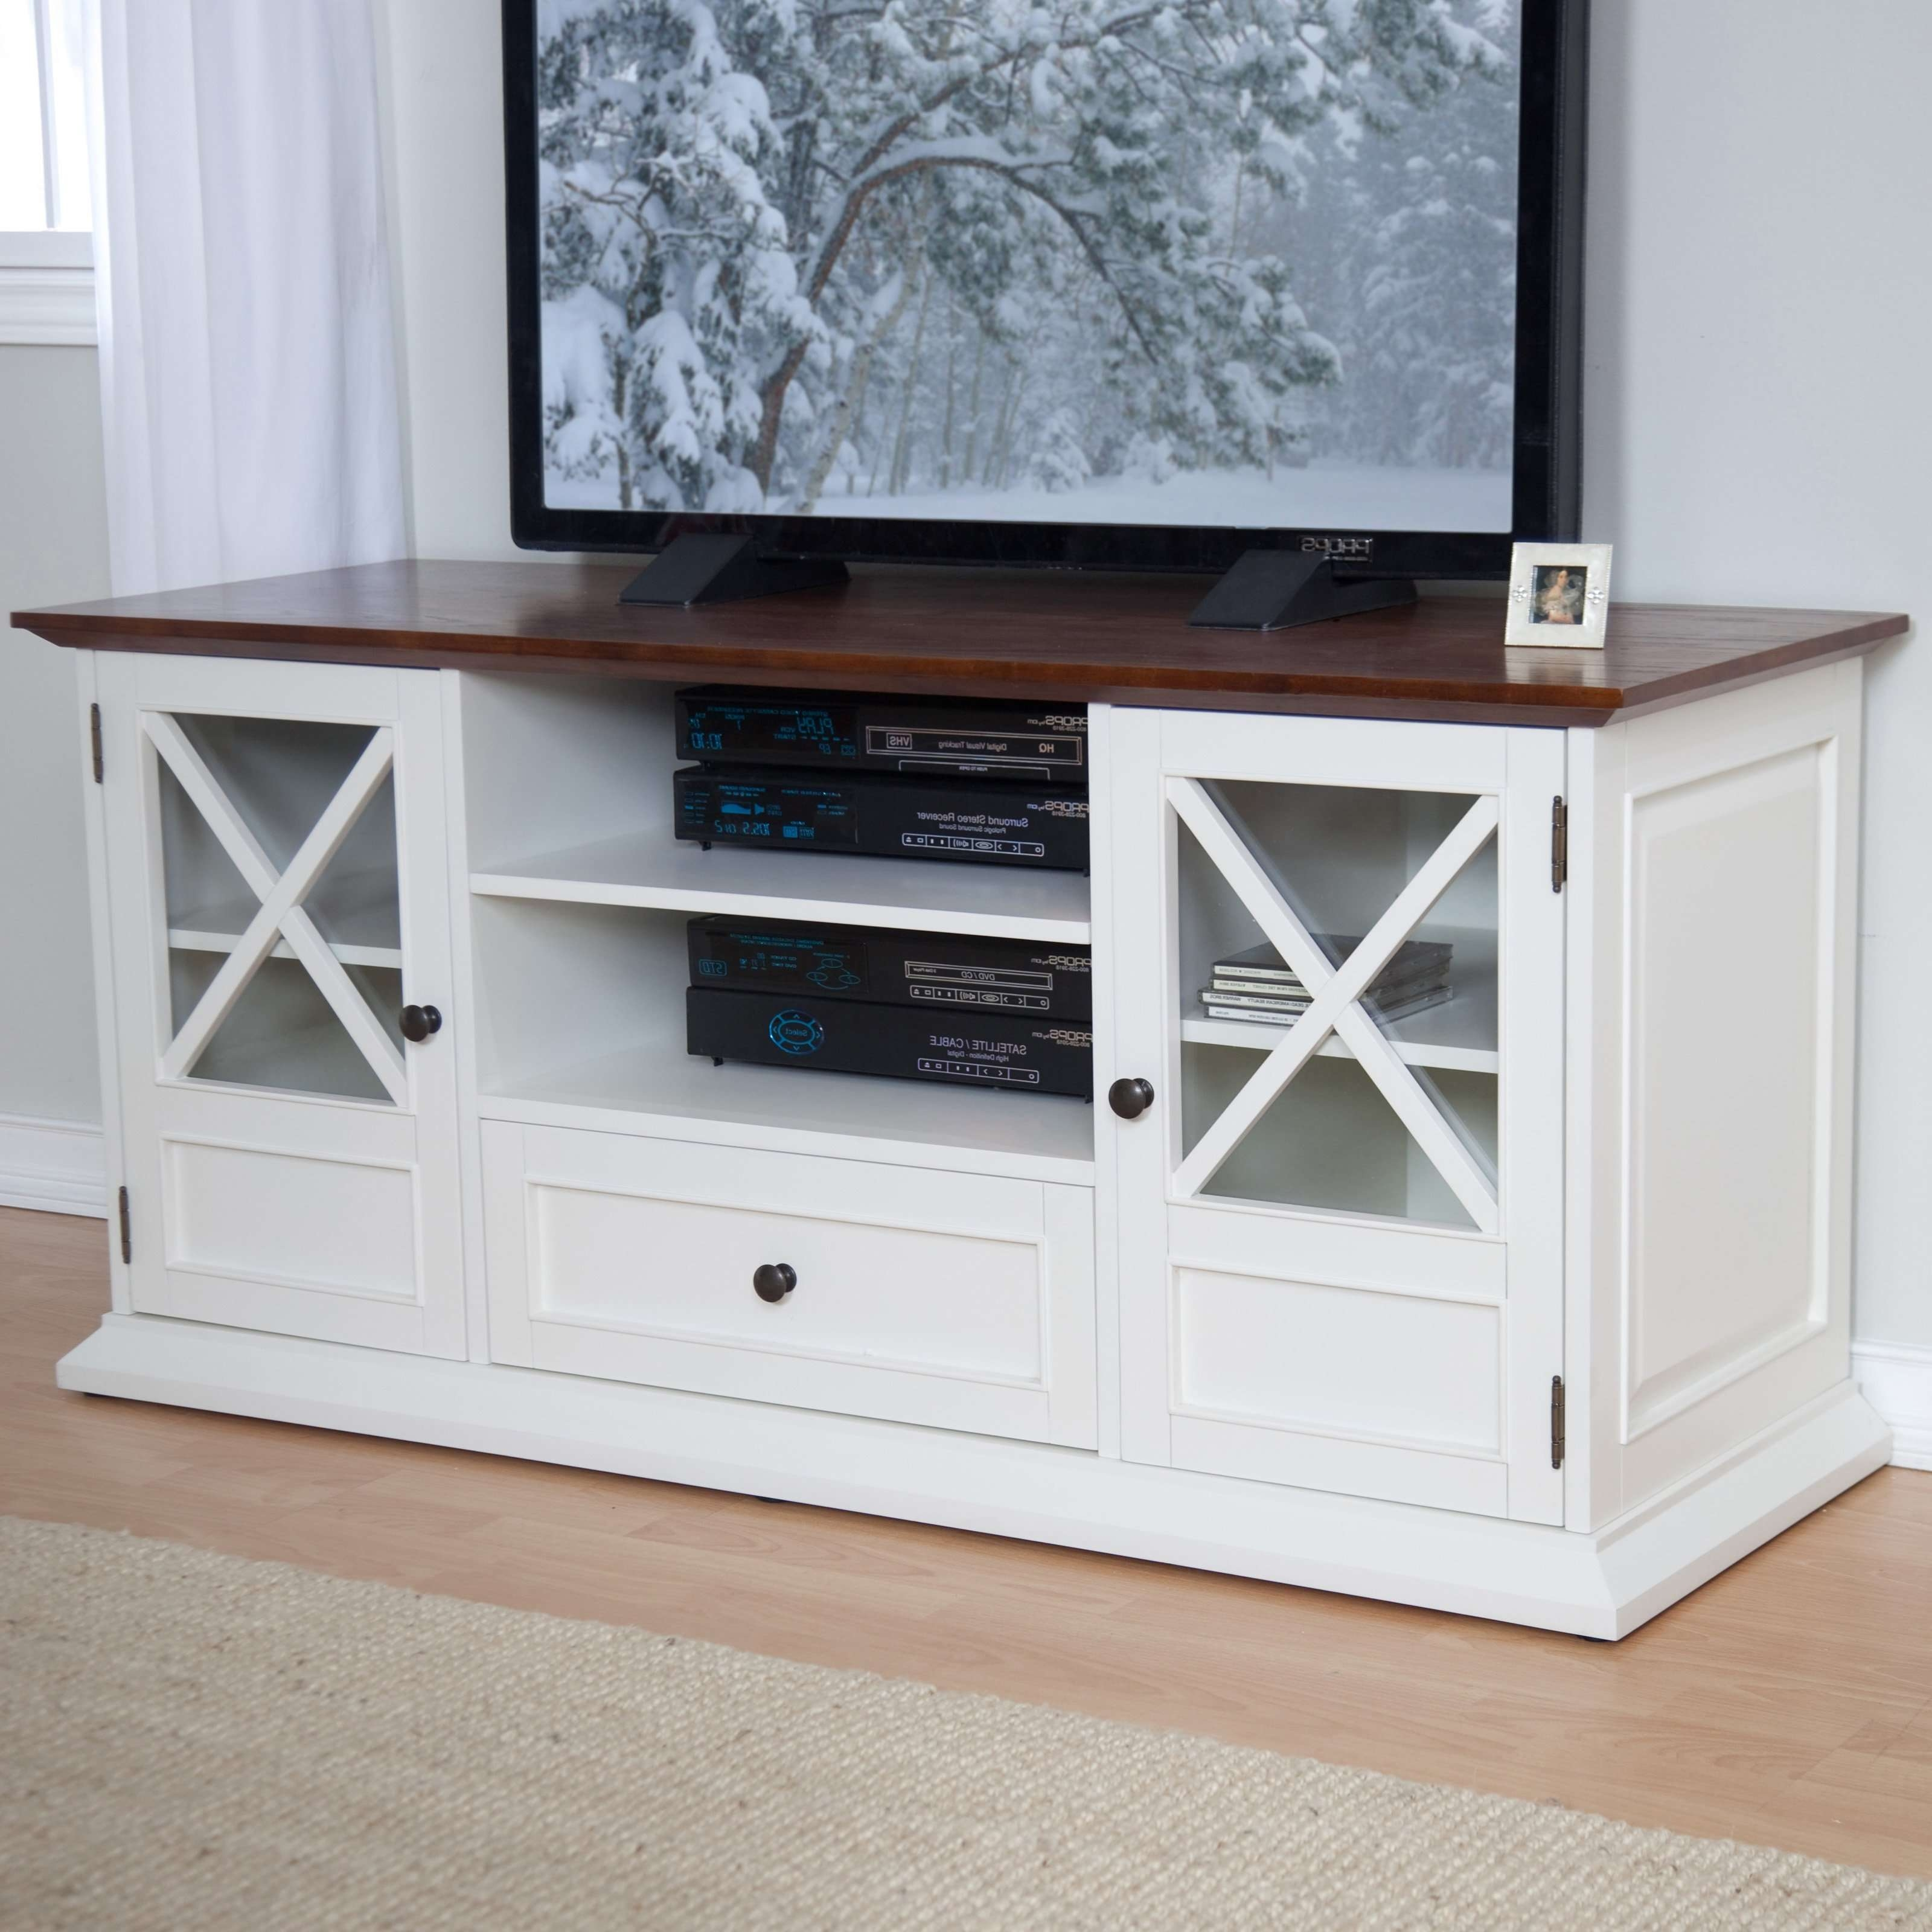 Belham Living Hampton Tv Stand – White/oak | Hayneedle For Tv Stands In Oak (View 4 of 15)